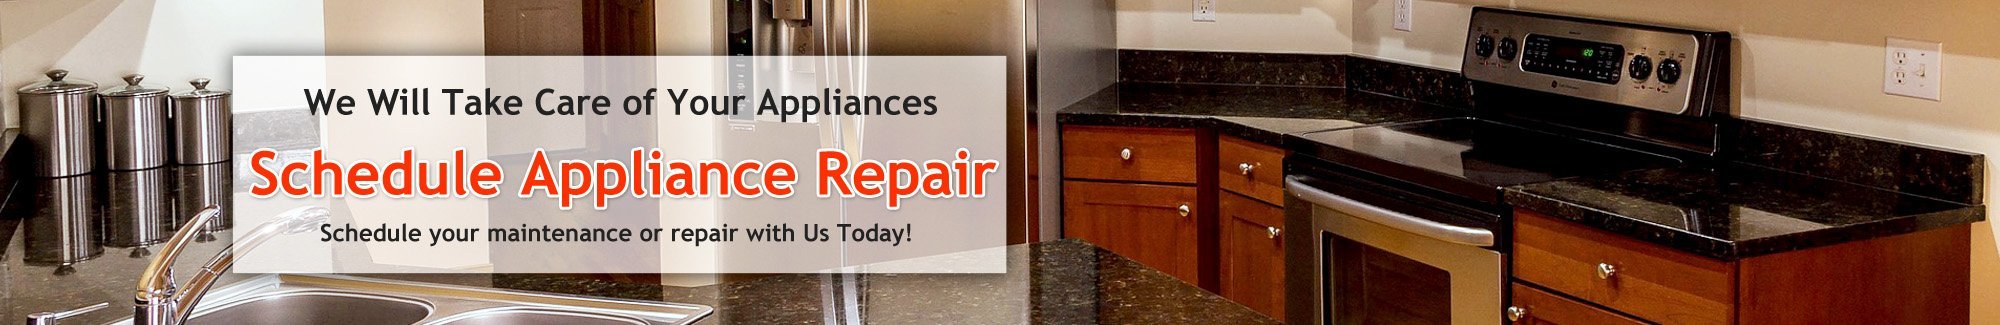 Save $70 when you schedule your AC repair with Appliance and Air Care Experts today!